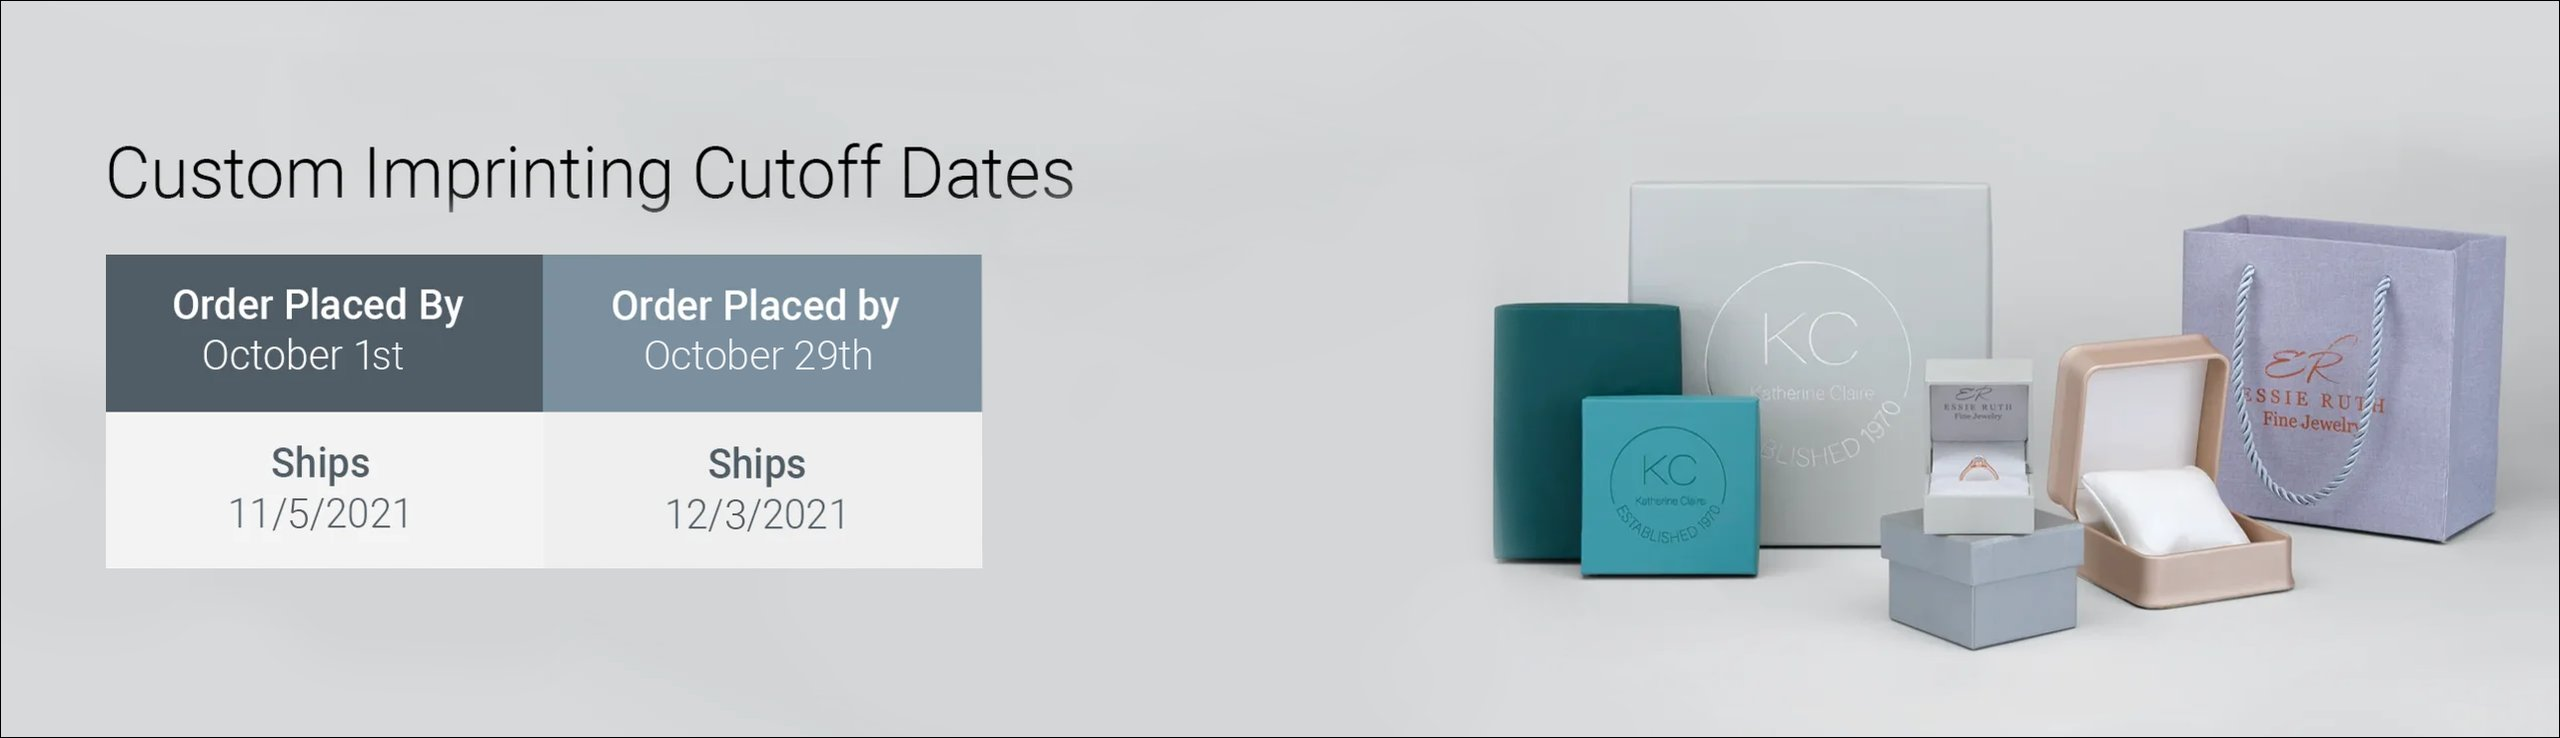 Custom Imprinting Cutoff Dates | Orders placed by October 1st ship November 5th. Orders placed October 29th ship December 3rd